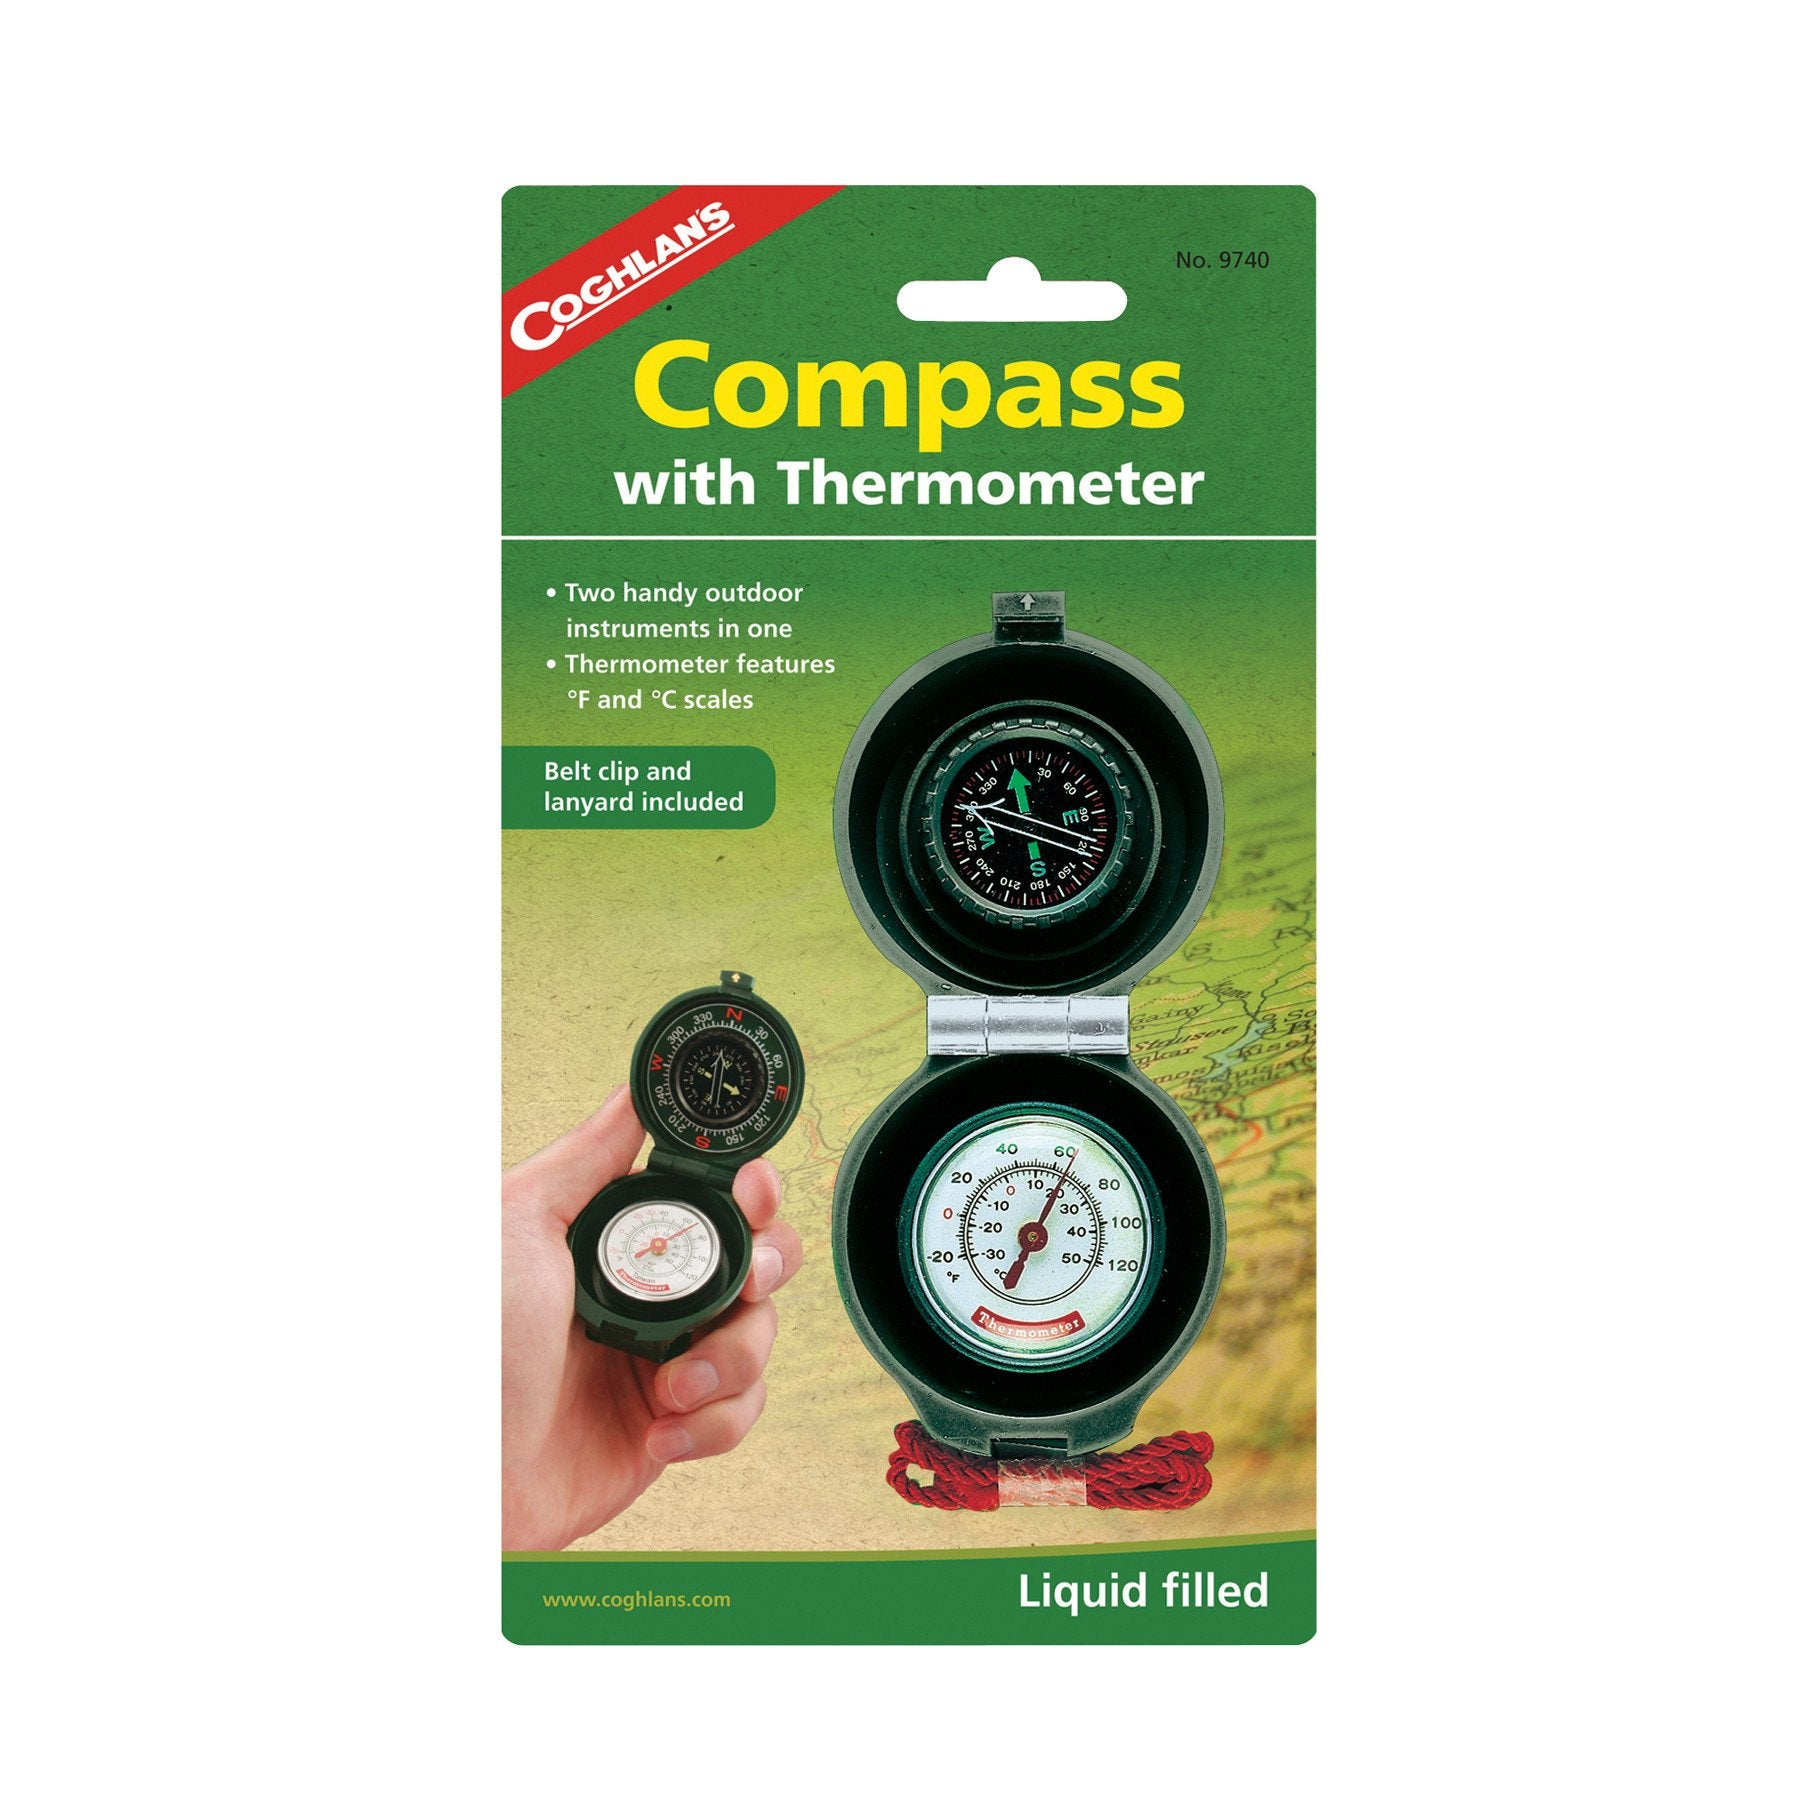 Coghlans Compass With Thermometer